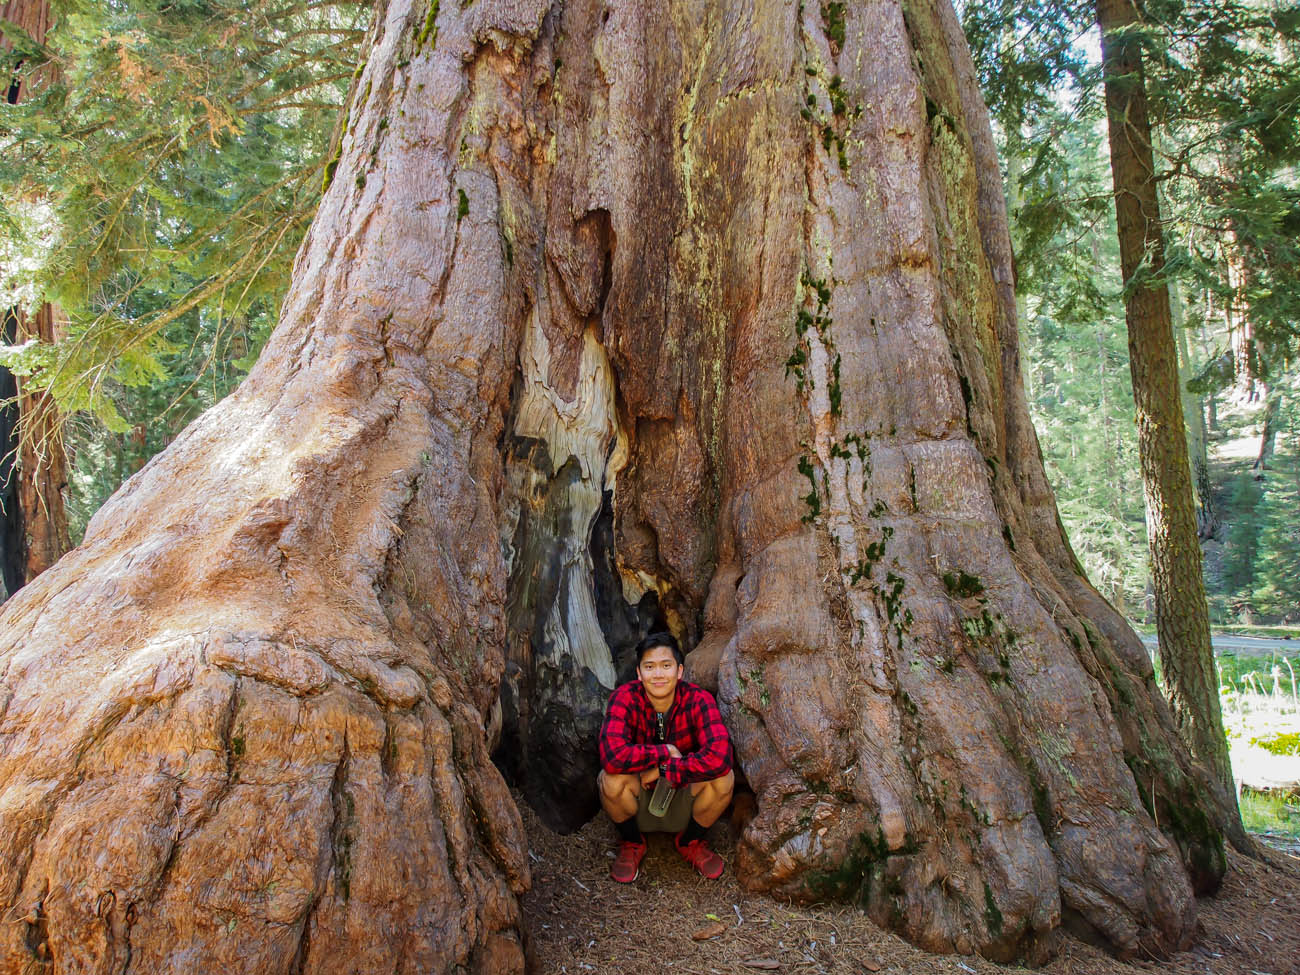 Showing the massive size of the trunks